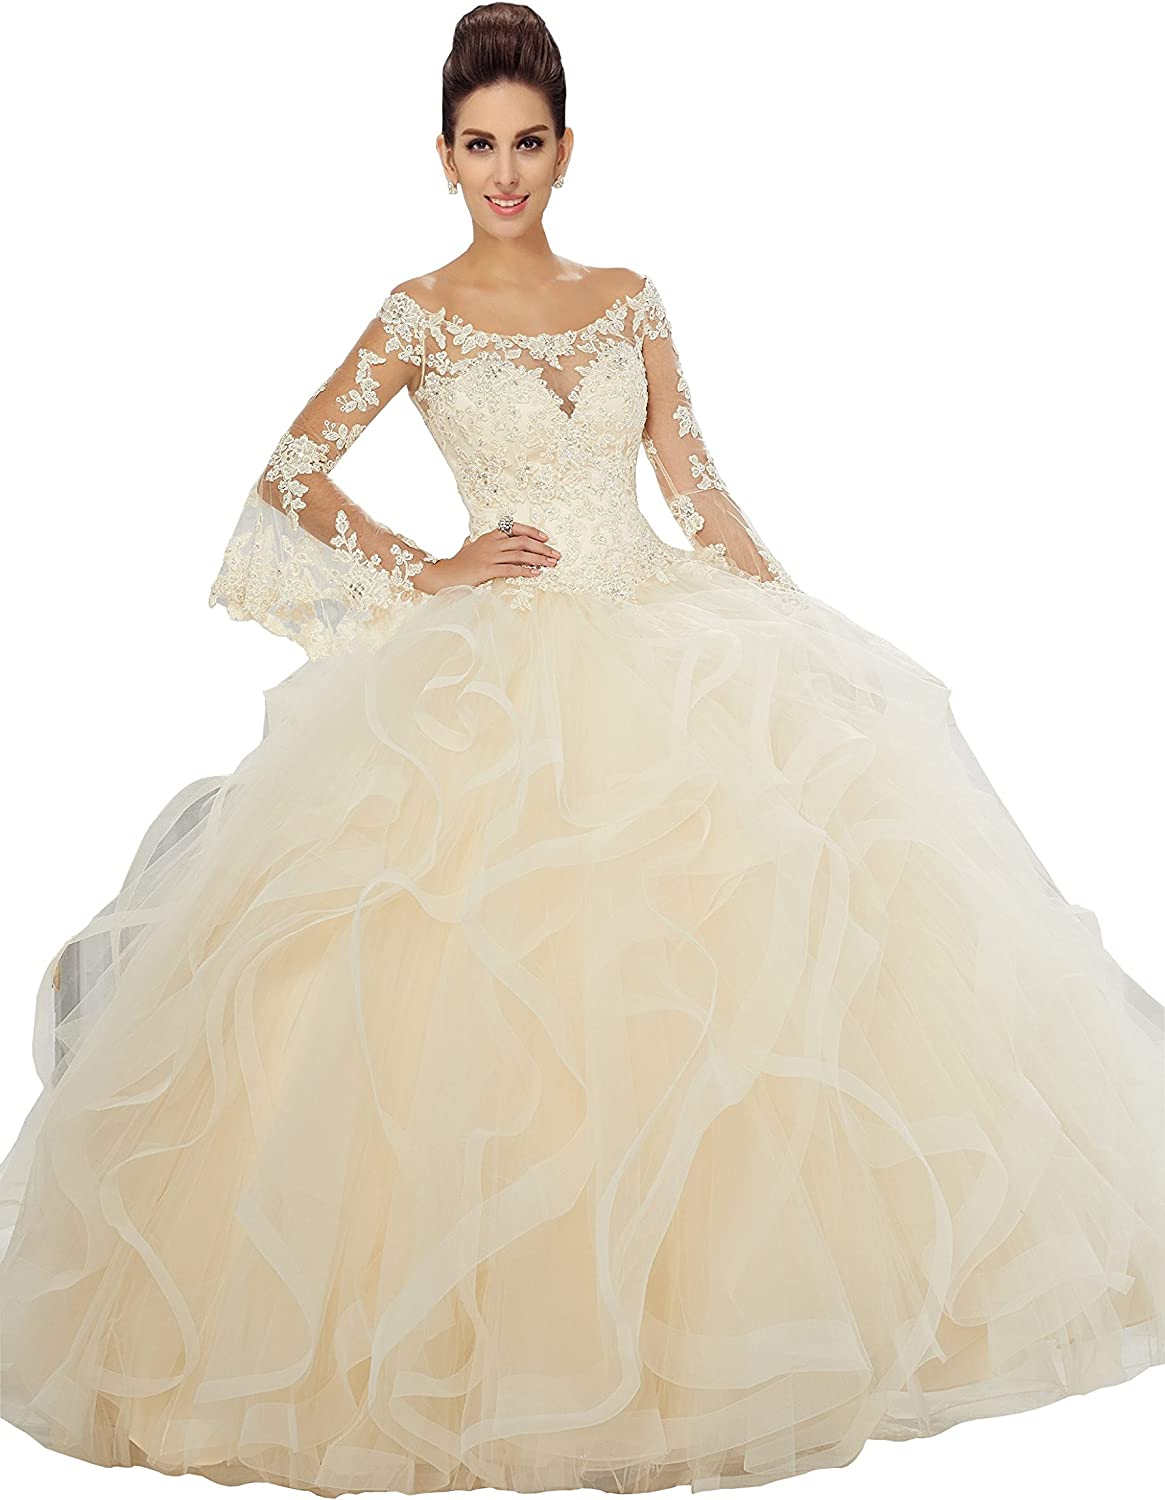 Fannydress Off Shoulder Quinceanera Dresses Ruffles Long Sleeve Sheer Lace Applique Beads Sequins Prom Dress in Sunday 2019